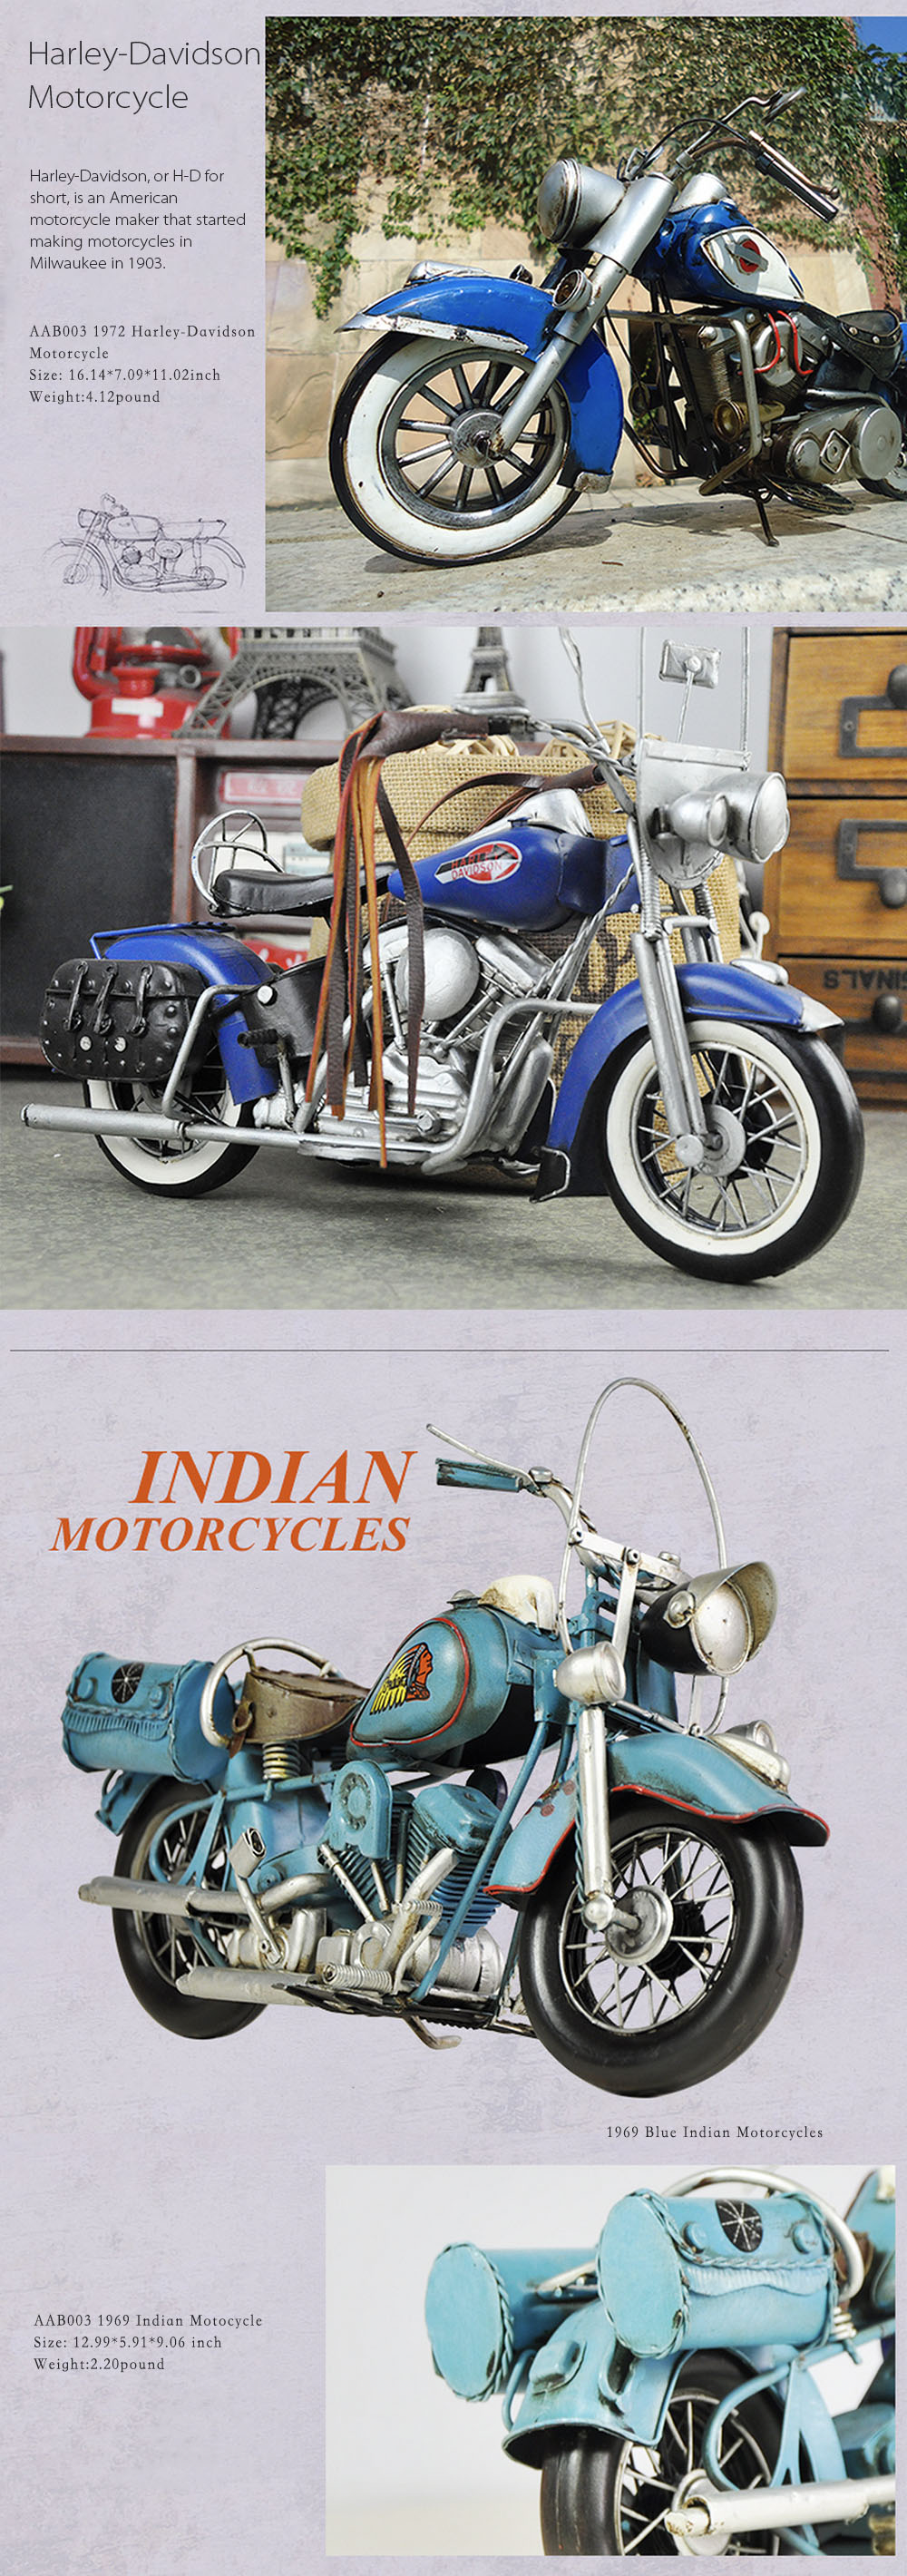 Retro Style Motorcycle Miniature For Motorcycle Funs